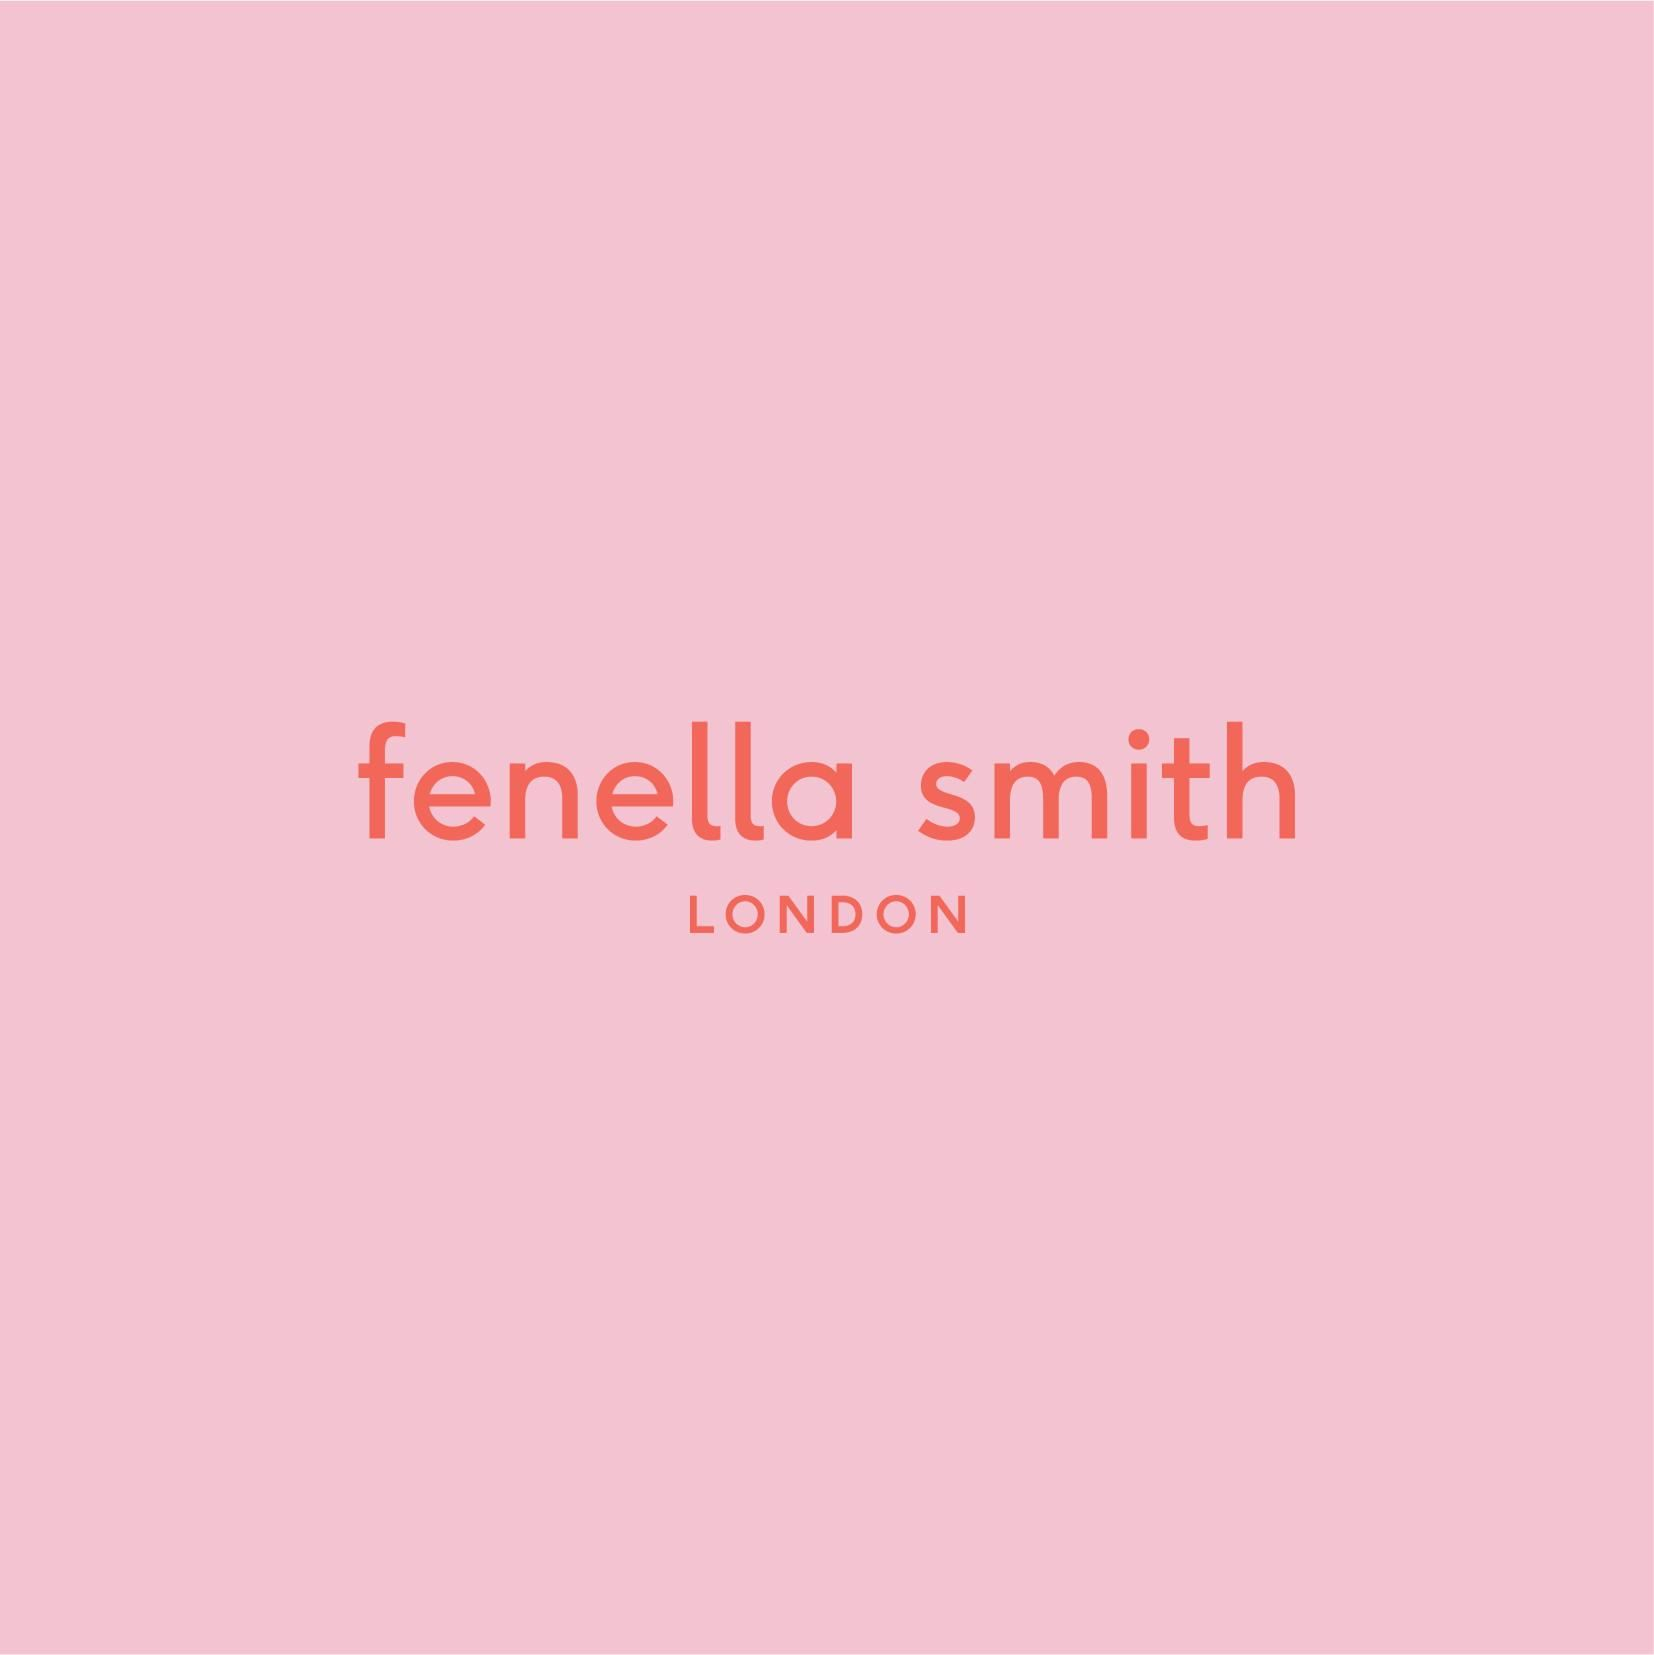 Fenella Smith Ltd.